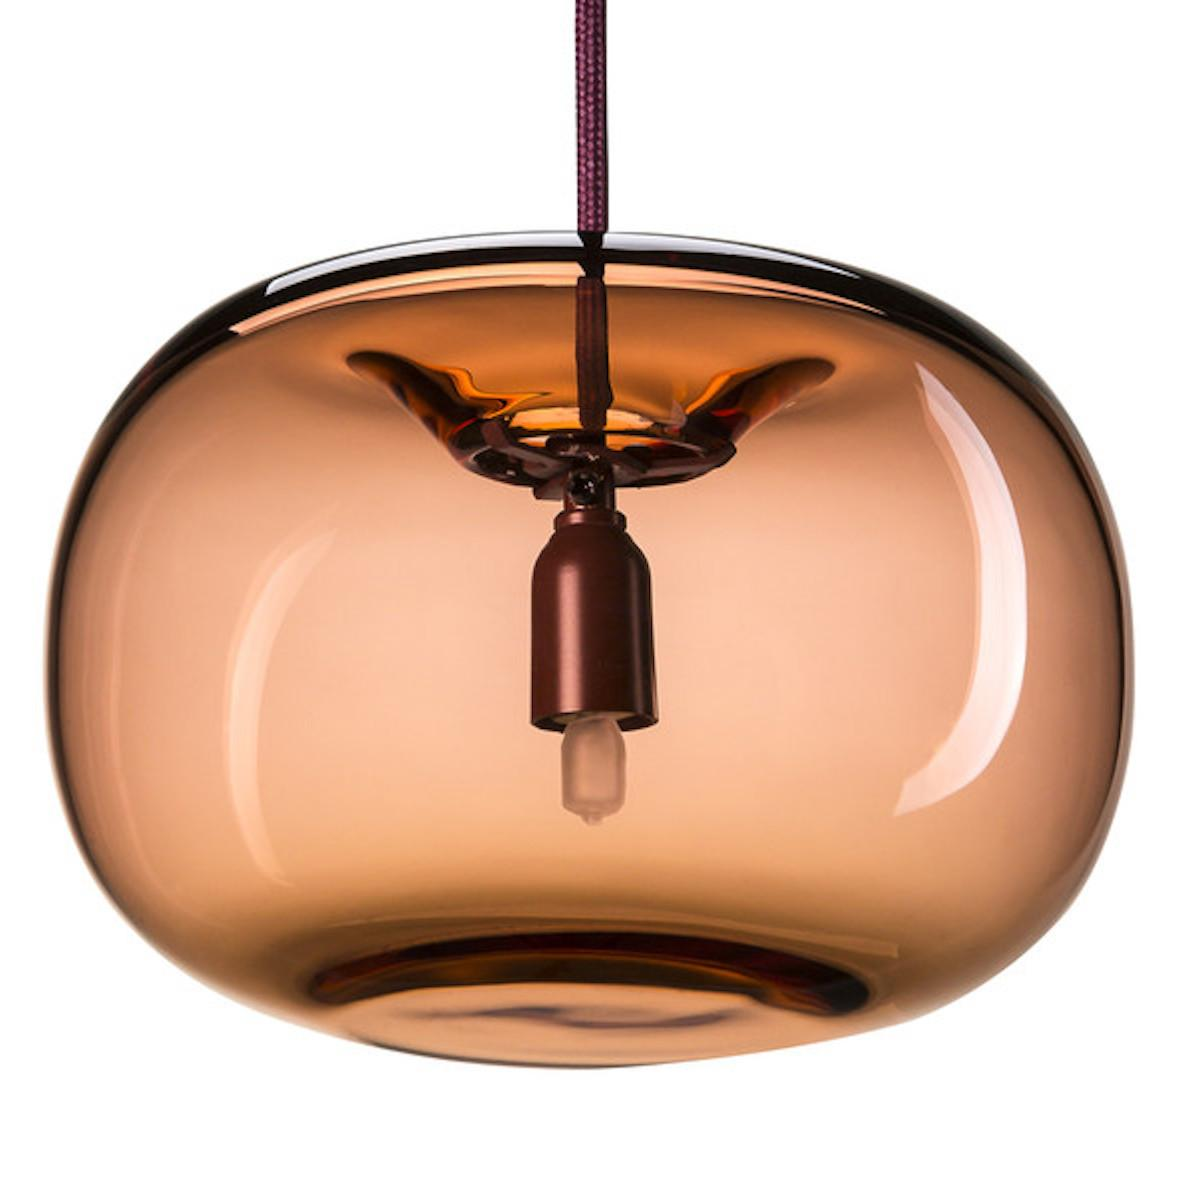 Orsjo-Pebble-Pendant-Light-Plump-Oxide-Red